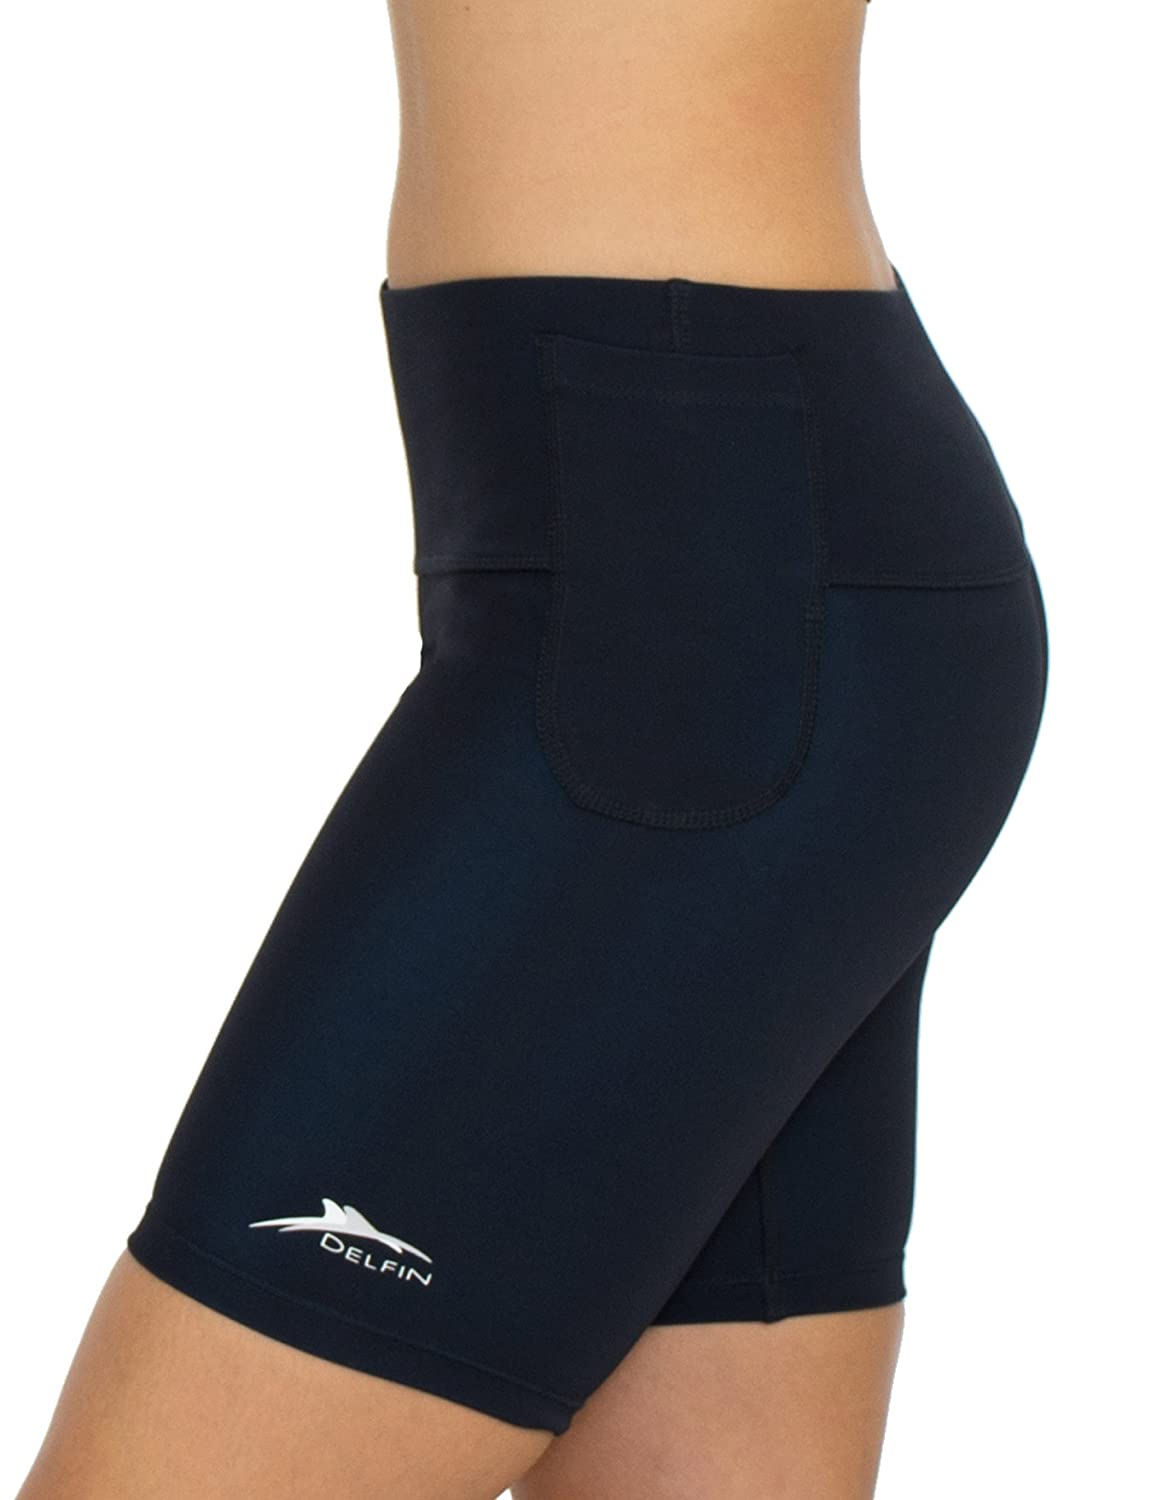 Delfin Spa Women's Mineral Infused Energizing Fitness Shorts – Petite thru Plus Size